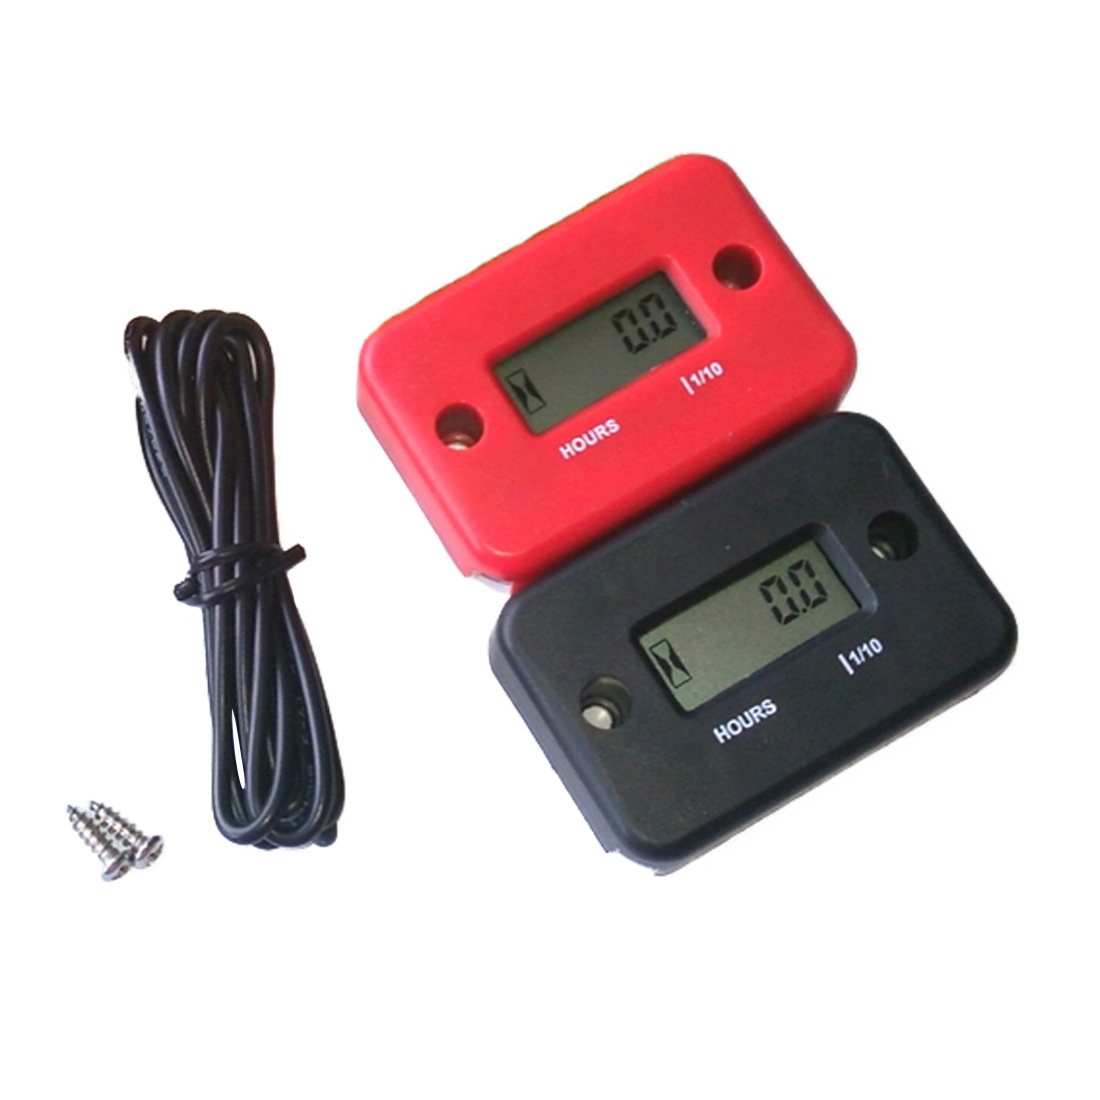 Digital Hour Meter Waterproof LCD Display for Bike Motorcycle ATV Snowmobile Marine Boat Ski Dirt Gas Engine New Inductive ...